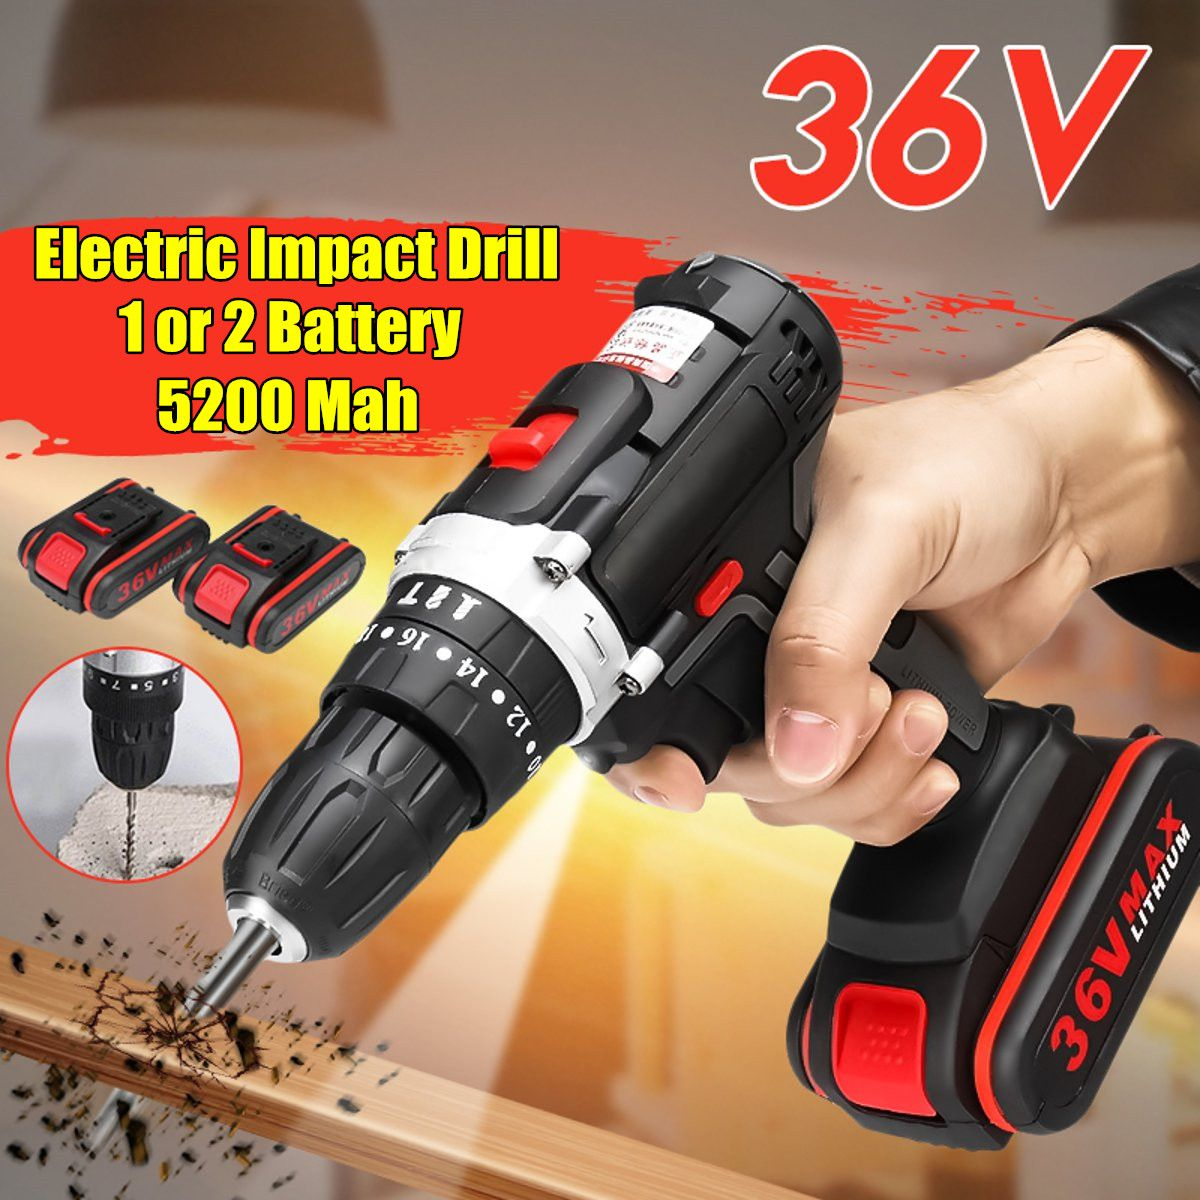 Newest 36V Electric Impact Drill DIY Home Electric Screwdriver Wireless Electric Cordless Drill 1/2 Li-ion Battery Power ToolsNewest 36V Electric Impact Drill DIY Home Electric Screwdriver Wireless Electric Cordless Drill 1/2 Li-ion Battery Power Tools